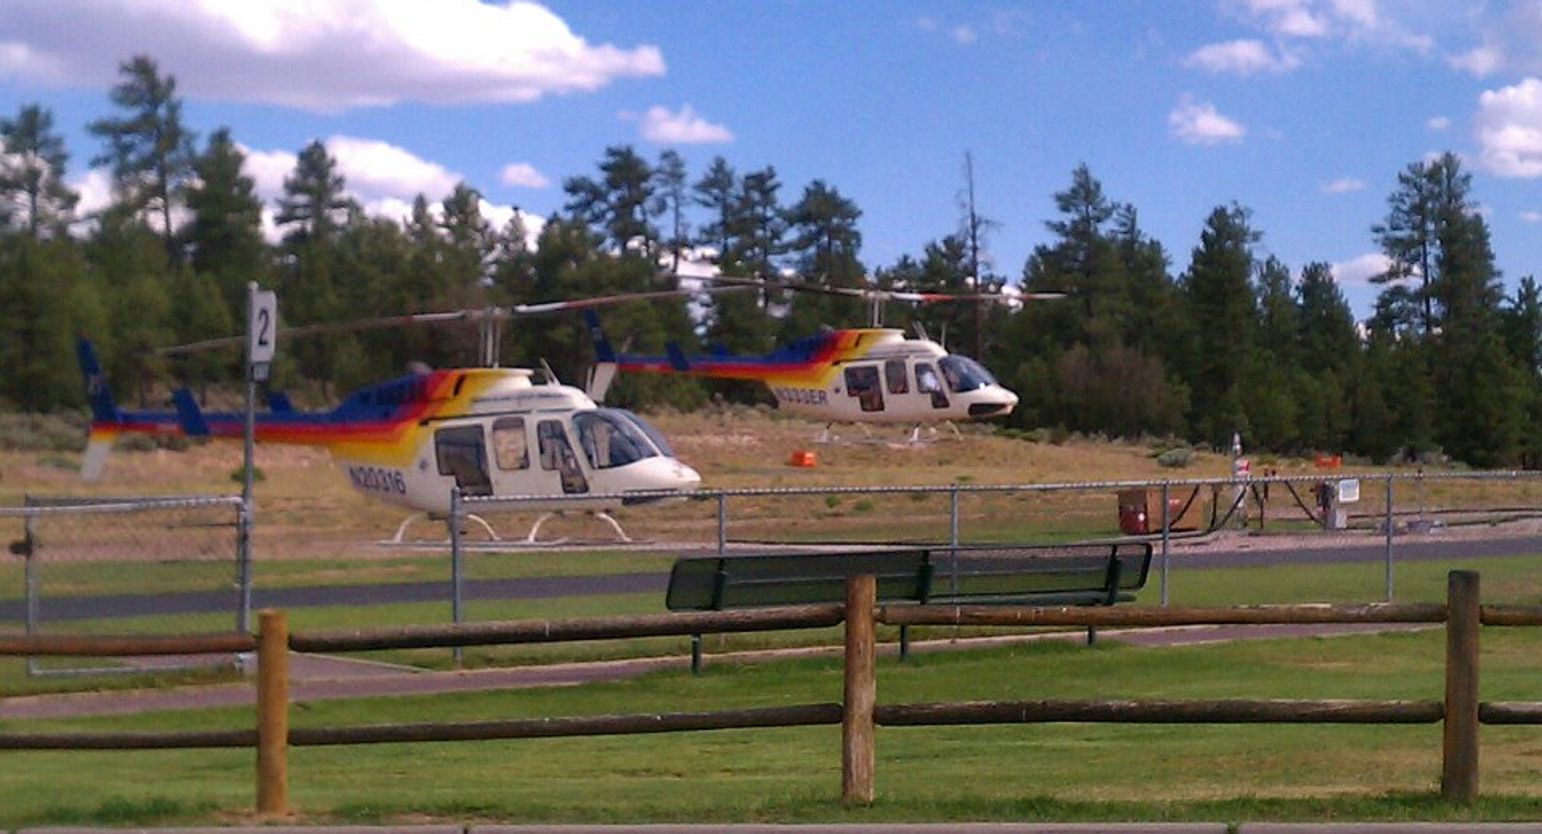 Helicopter tour arriving at the National Park Helicopter terminal.